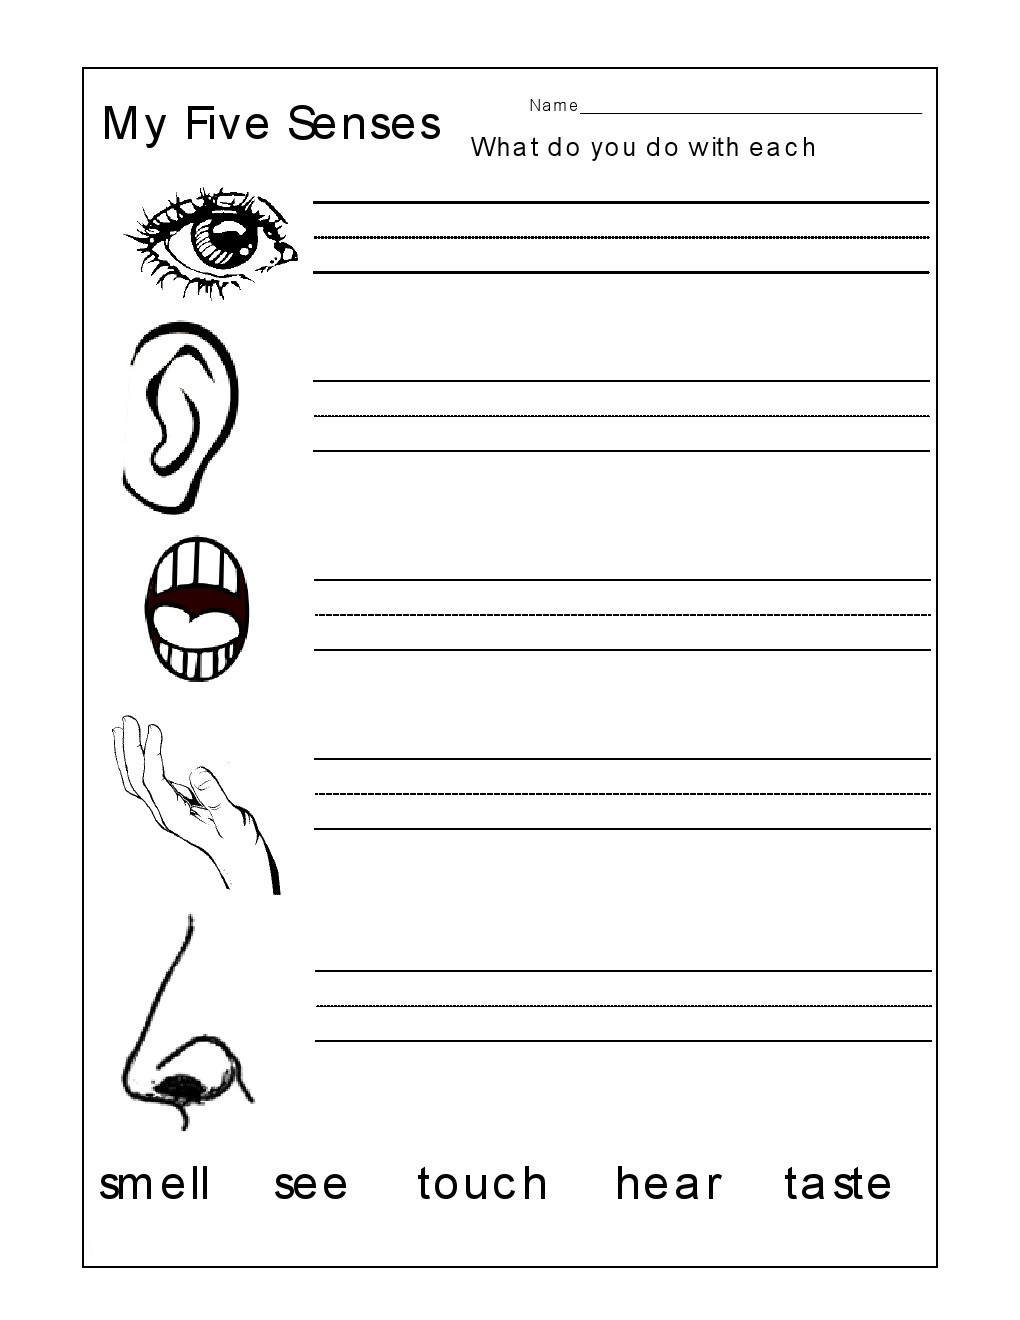 5 Senses Worksheet Preschool Kindergarten Worksheets Kindergarten Worksheets the 5